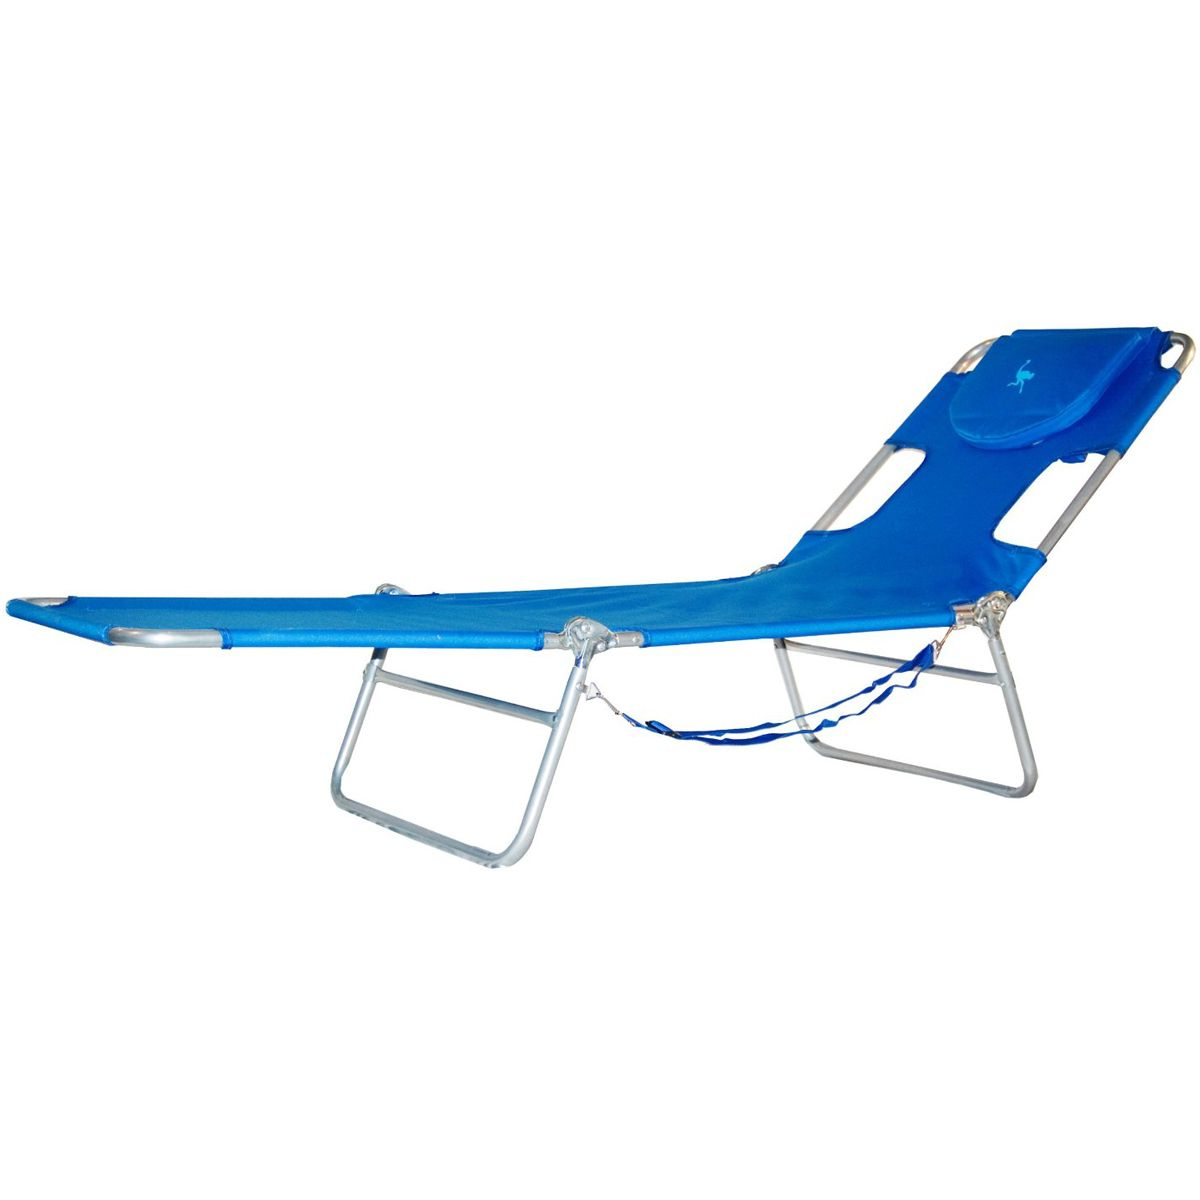 Cheap Beach And With Regard To 3 Position Portable Reclining Beach Chaise Lounges (View 13 of 25)